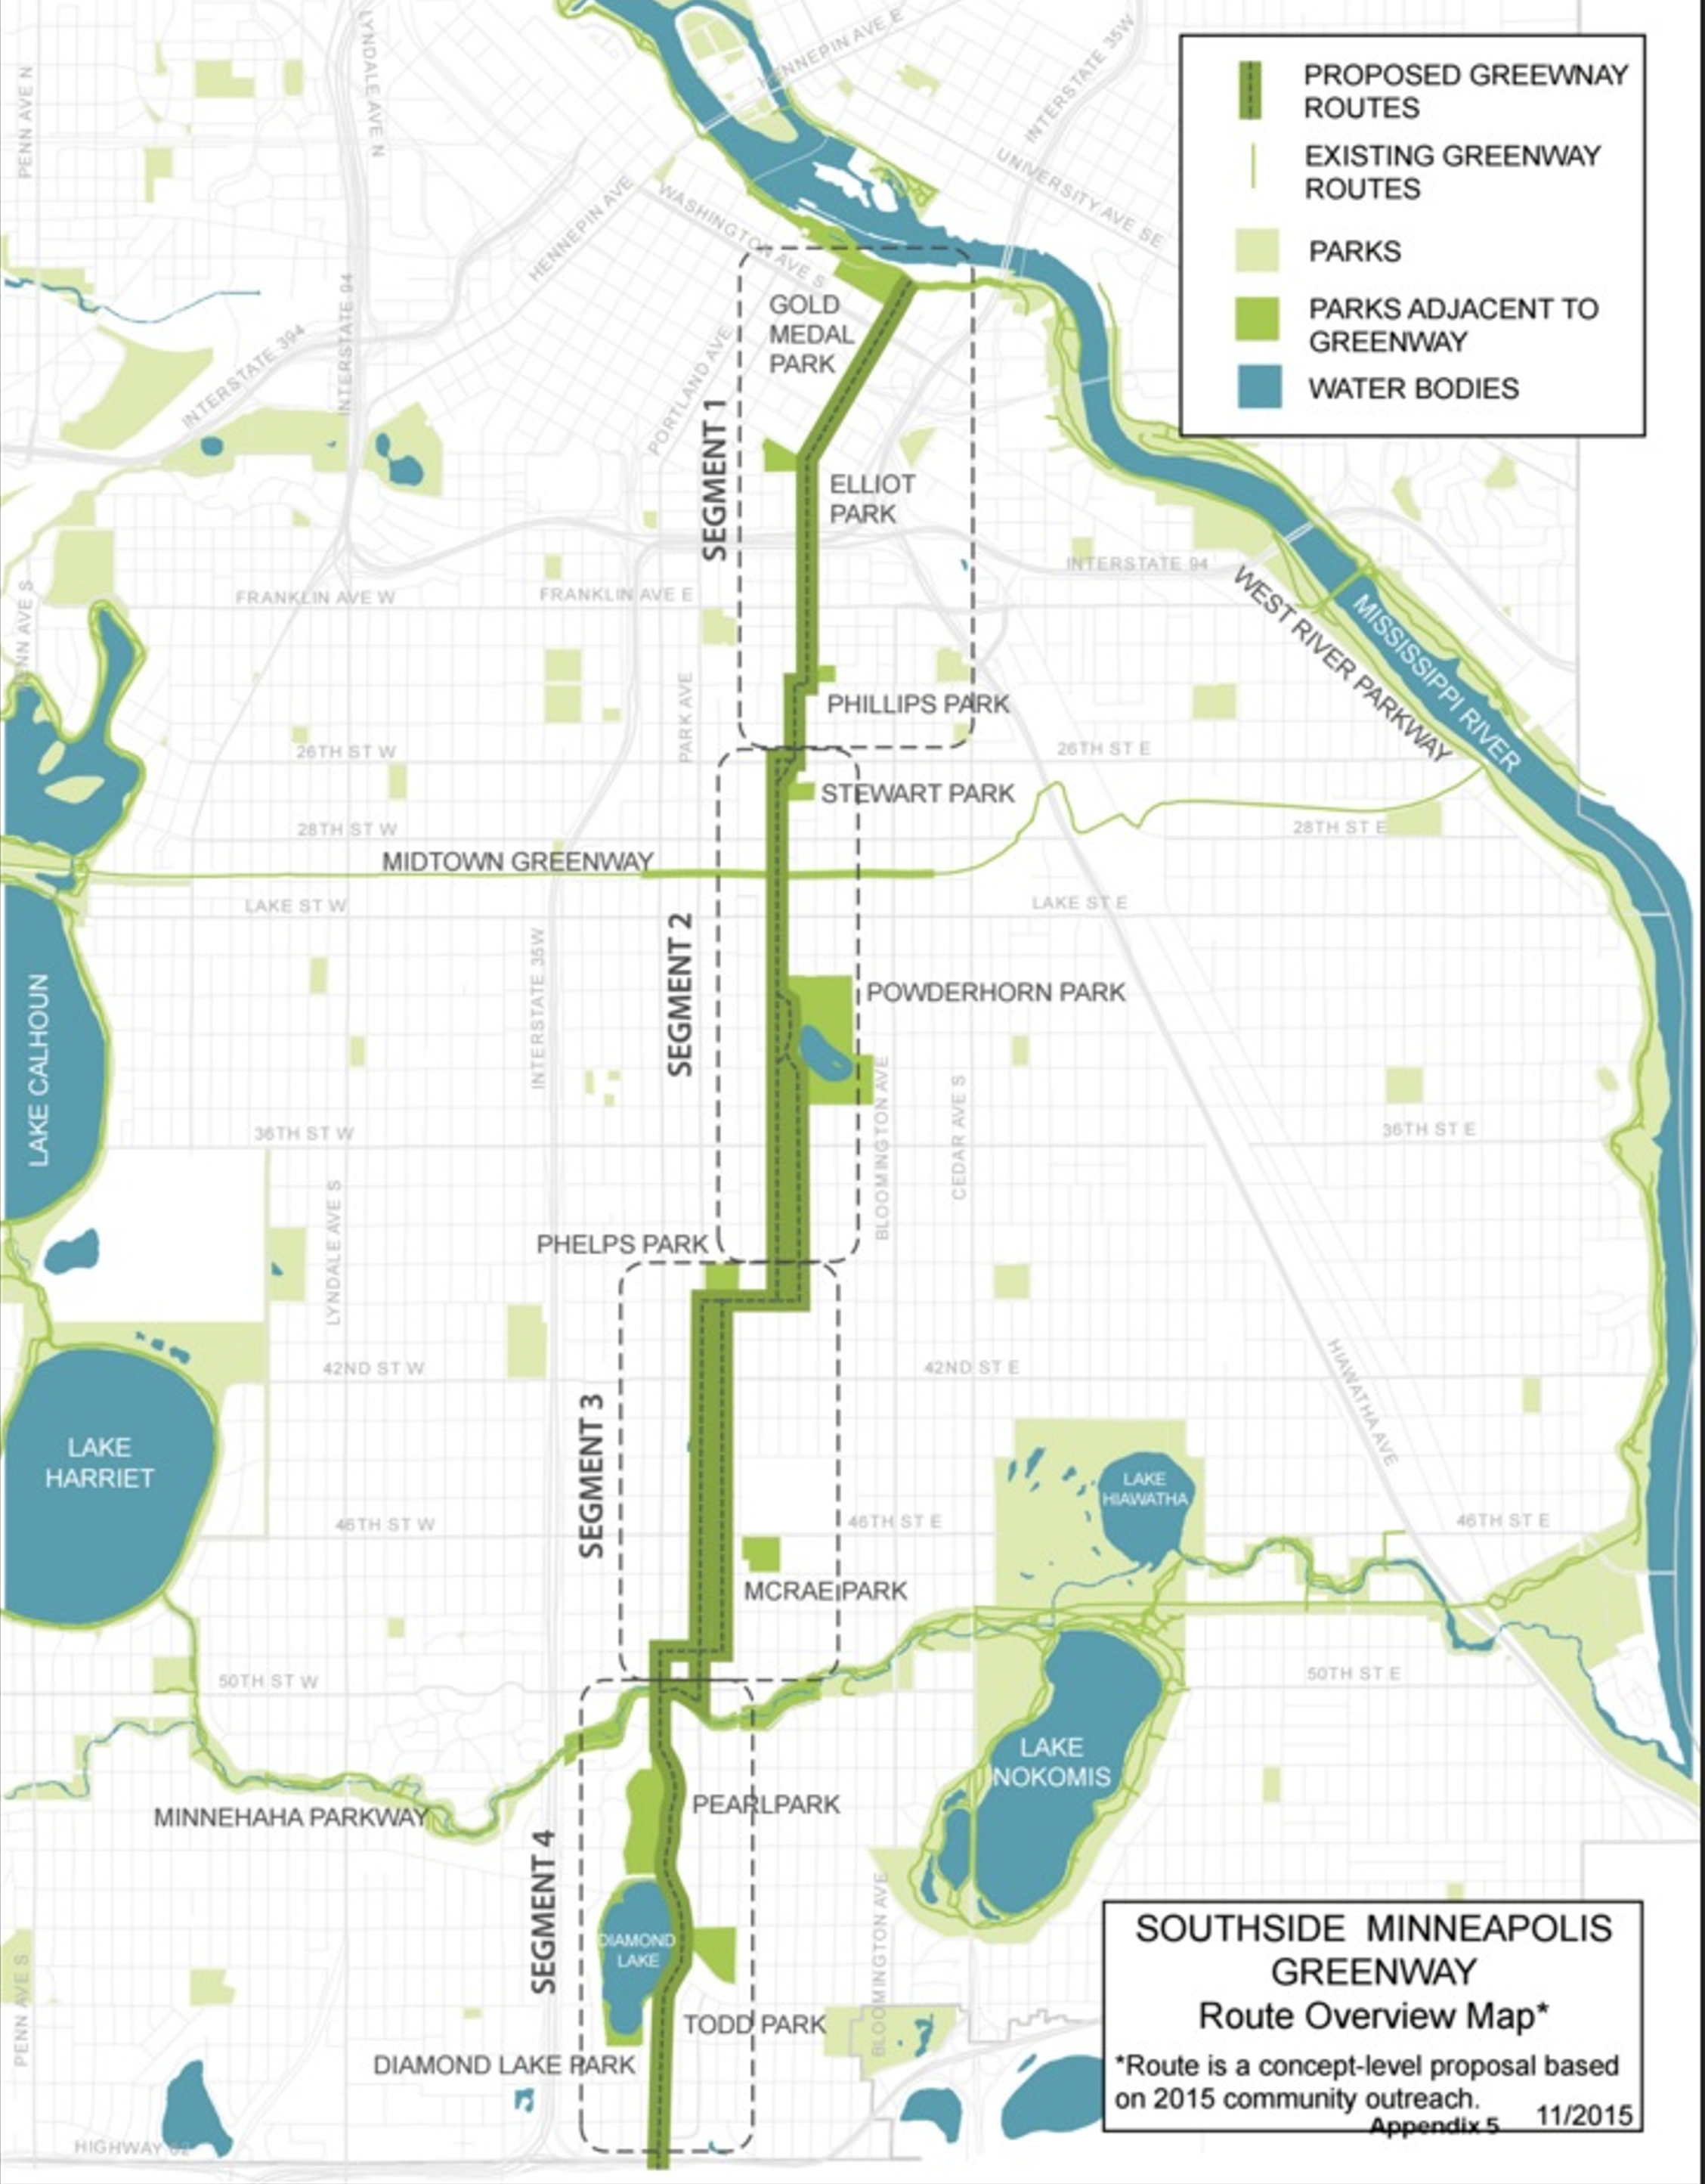 Southside_Greenway_Segments_Overview.png